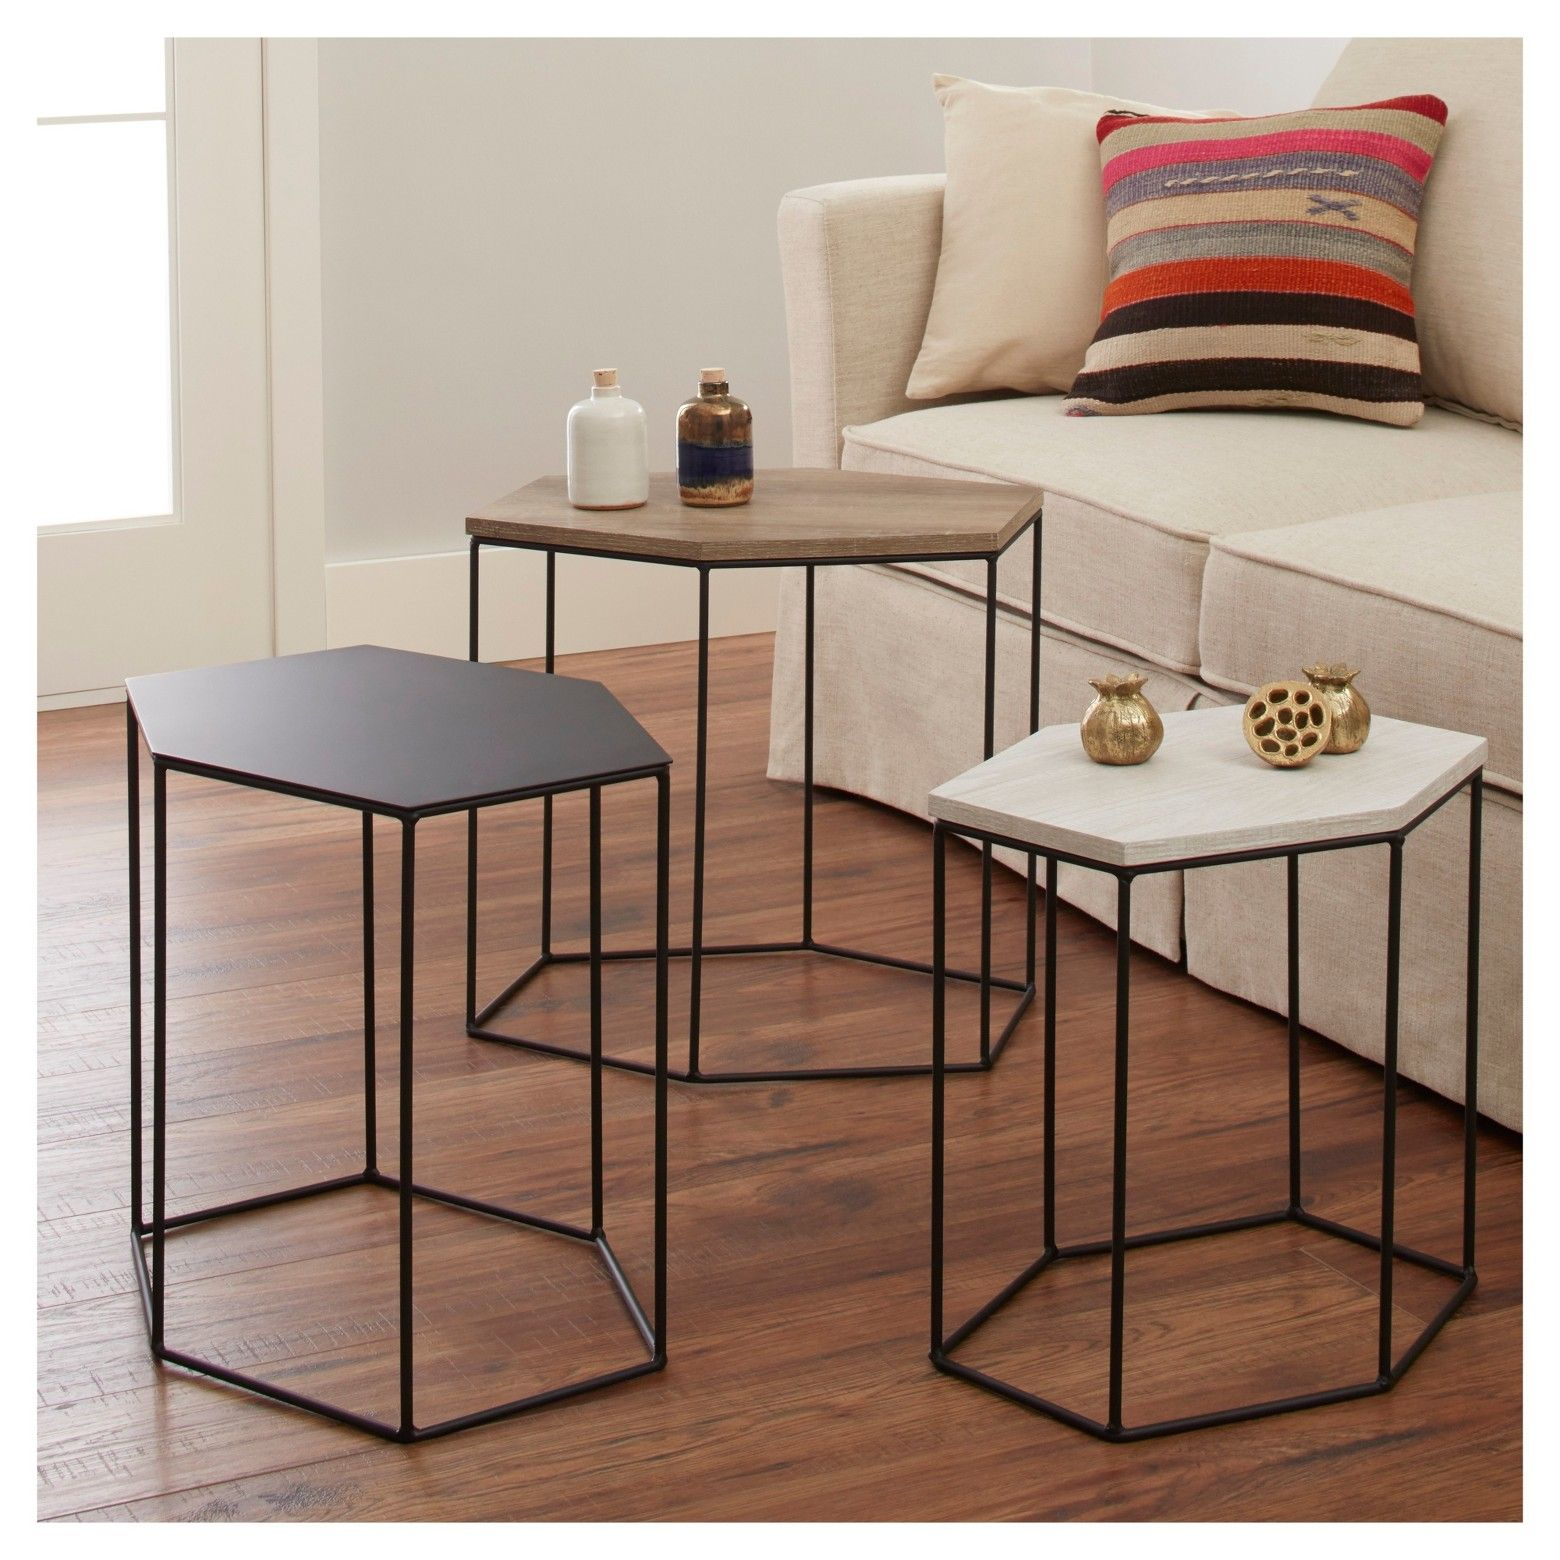 the whitney pack hexagonal accent tables threshold offer mawr metal table convenience and modern design small for your home office oak wine cabinet grey linens white marble coffee